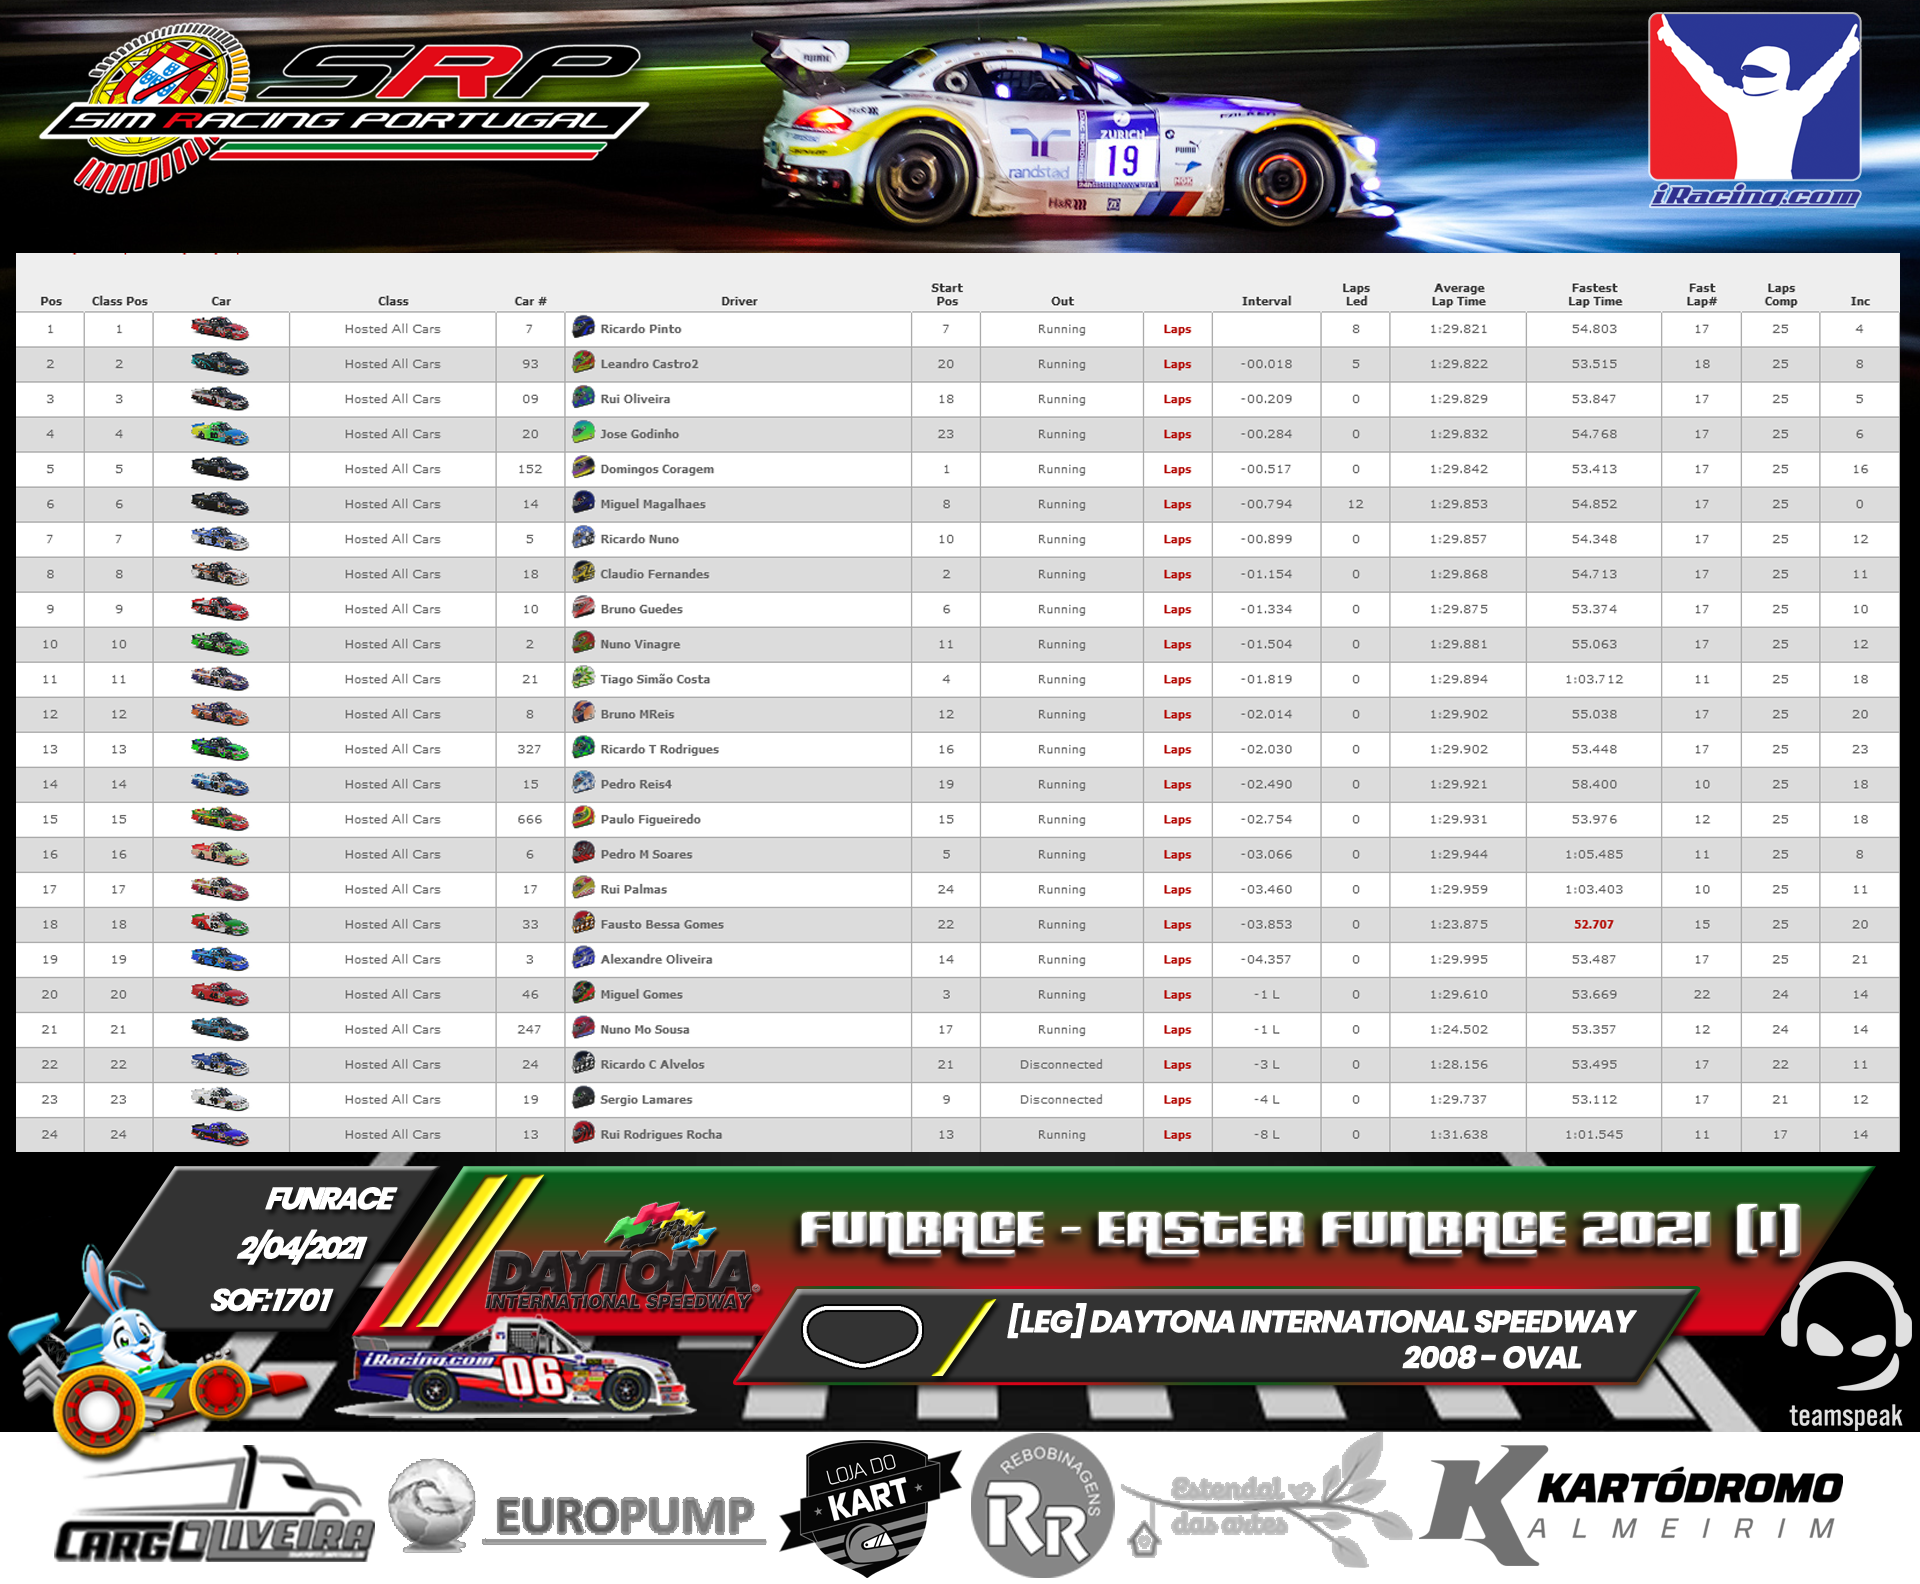 [Image: RaceResults2021-1.png]